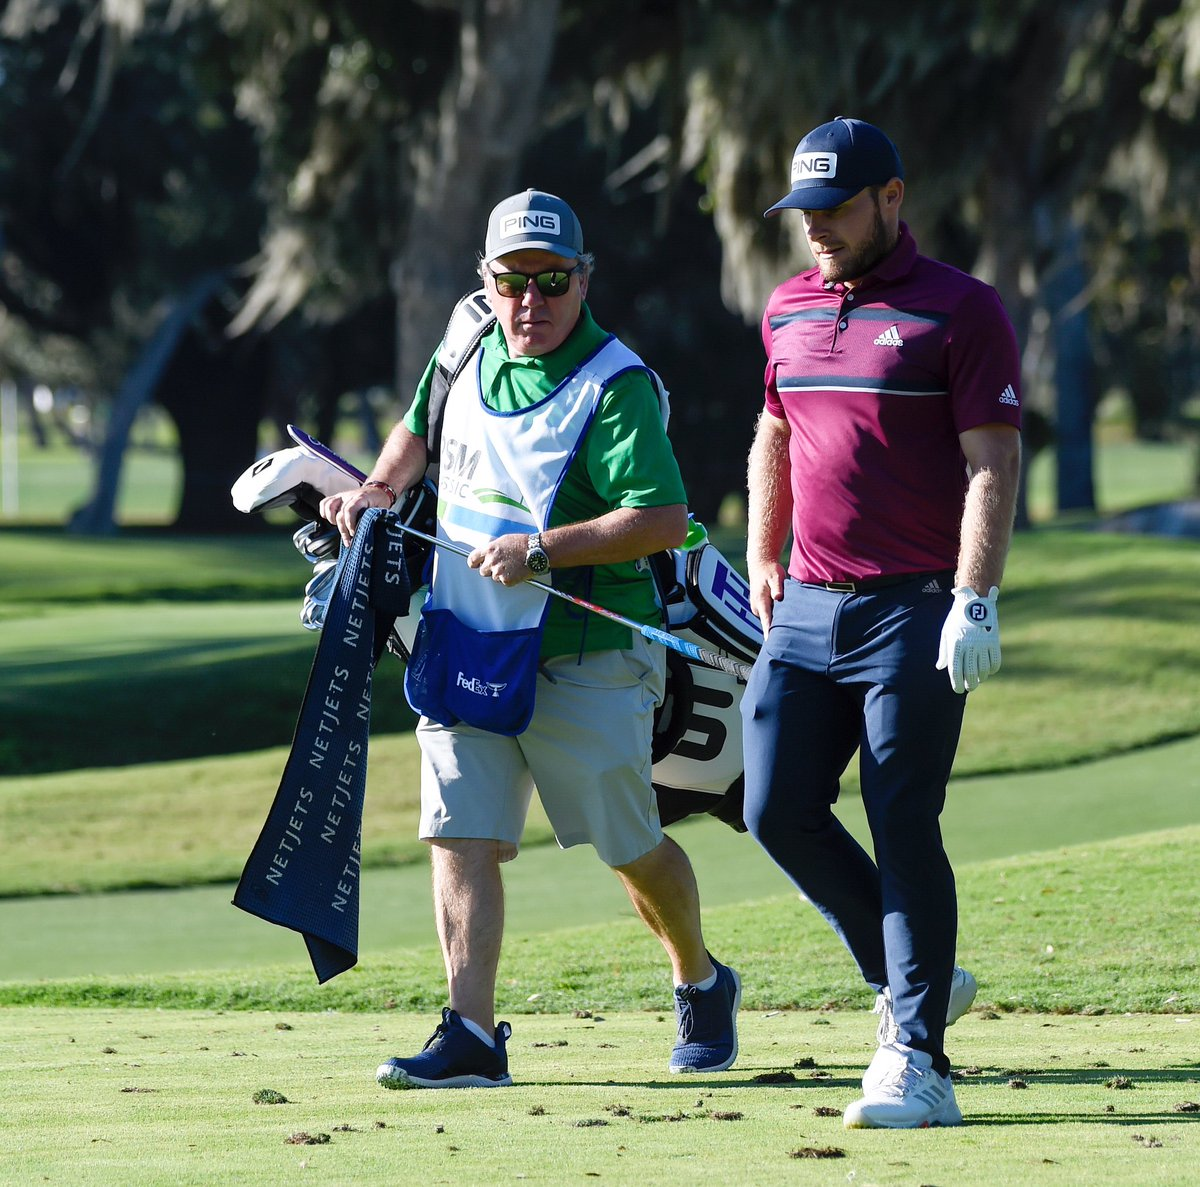 Walking into moving day at the RSM Classic.   Best of luck @TyrrellHatton. 🤜🏽🤛🏼 @PGATOUR